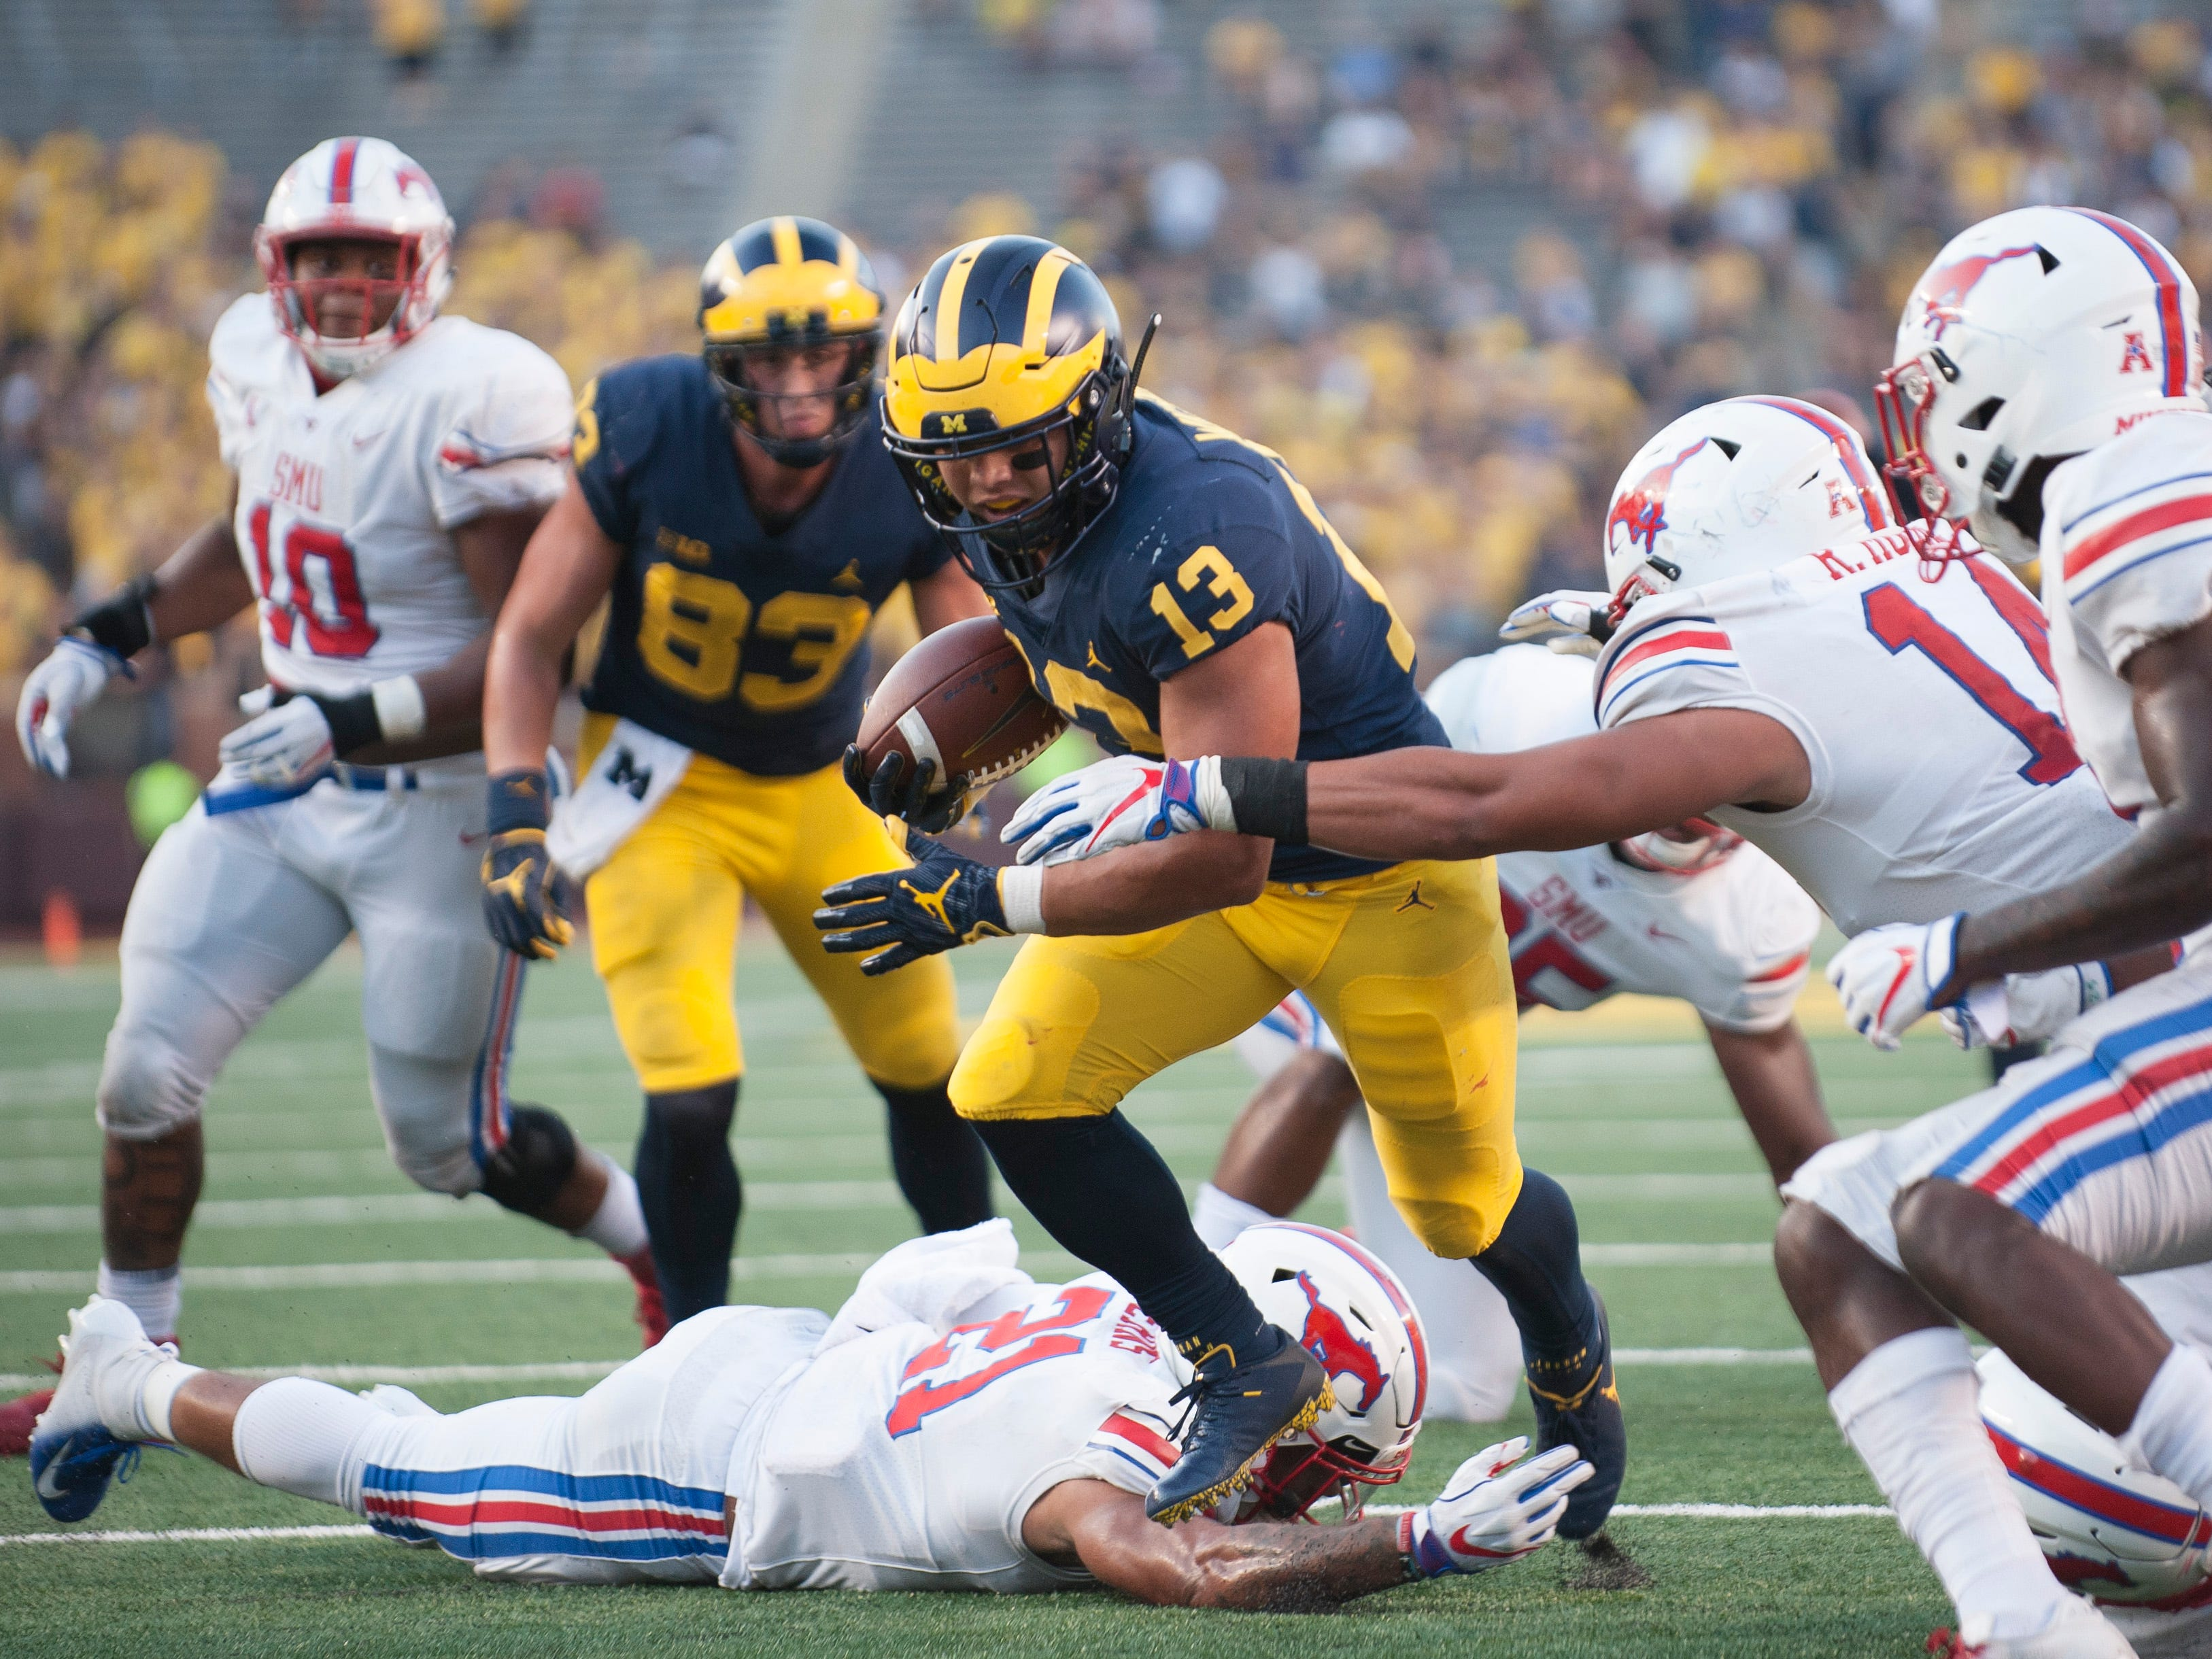 Michigan running back Tru Wilson scores on a nine-yard run in the fourth quarter. Wilson rushed for 53 yards on 11 carries.